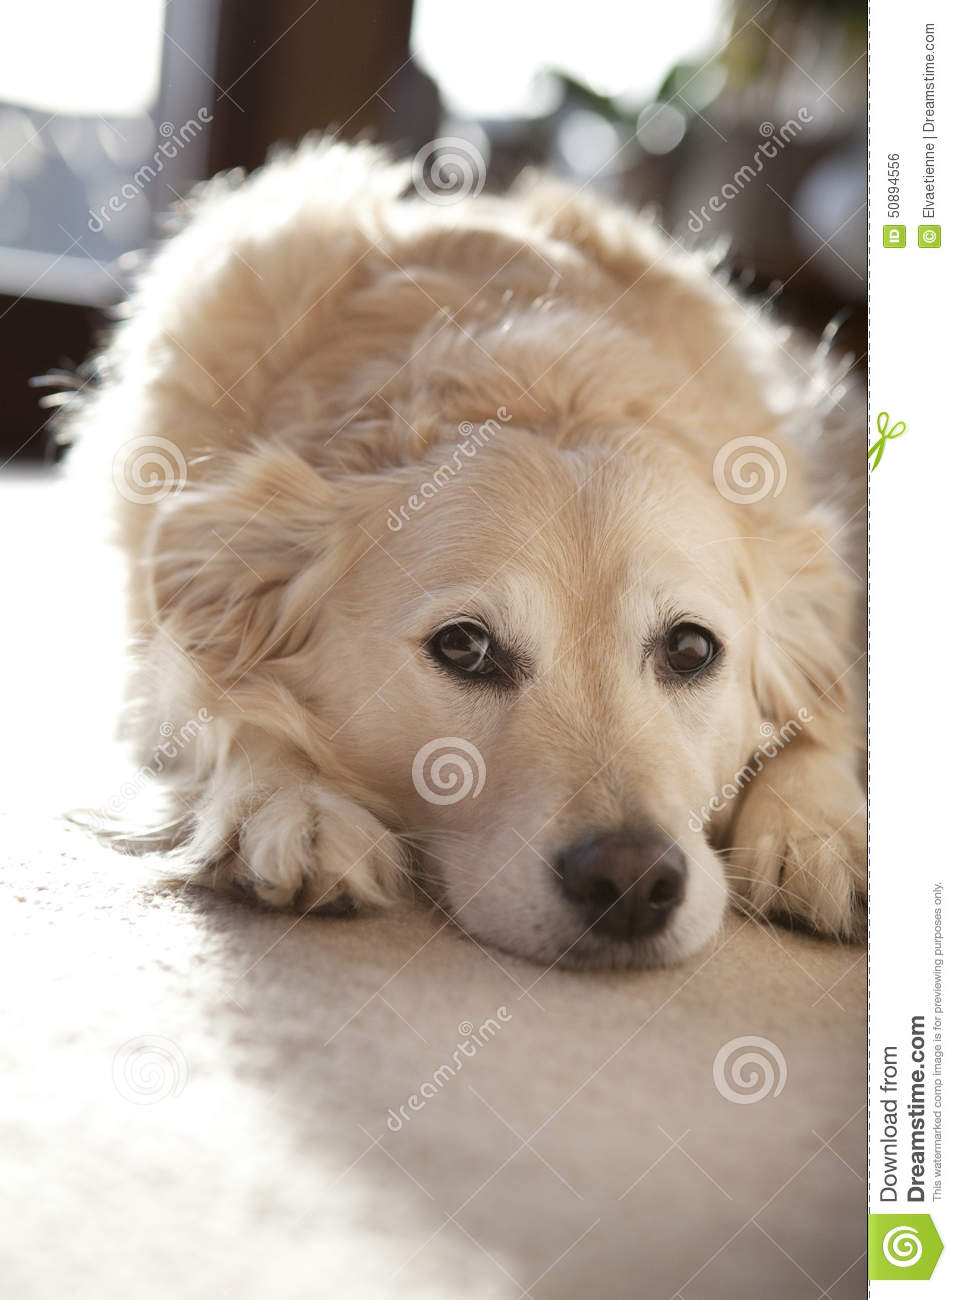 Golden Retriever Dog Lying Down In Home Environment Stock Photo